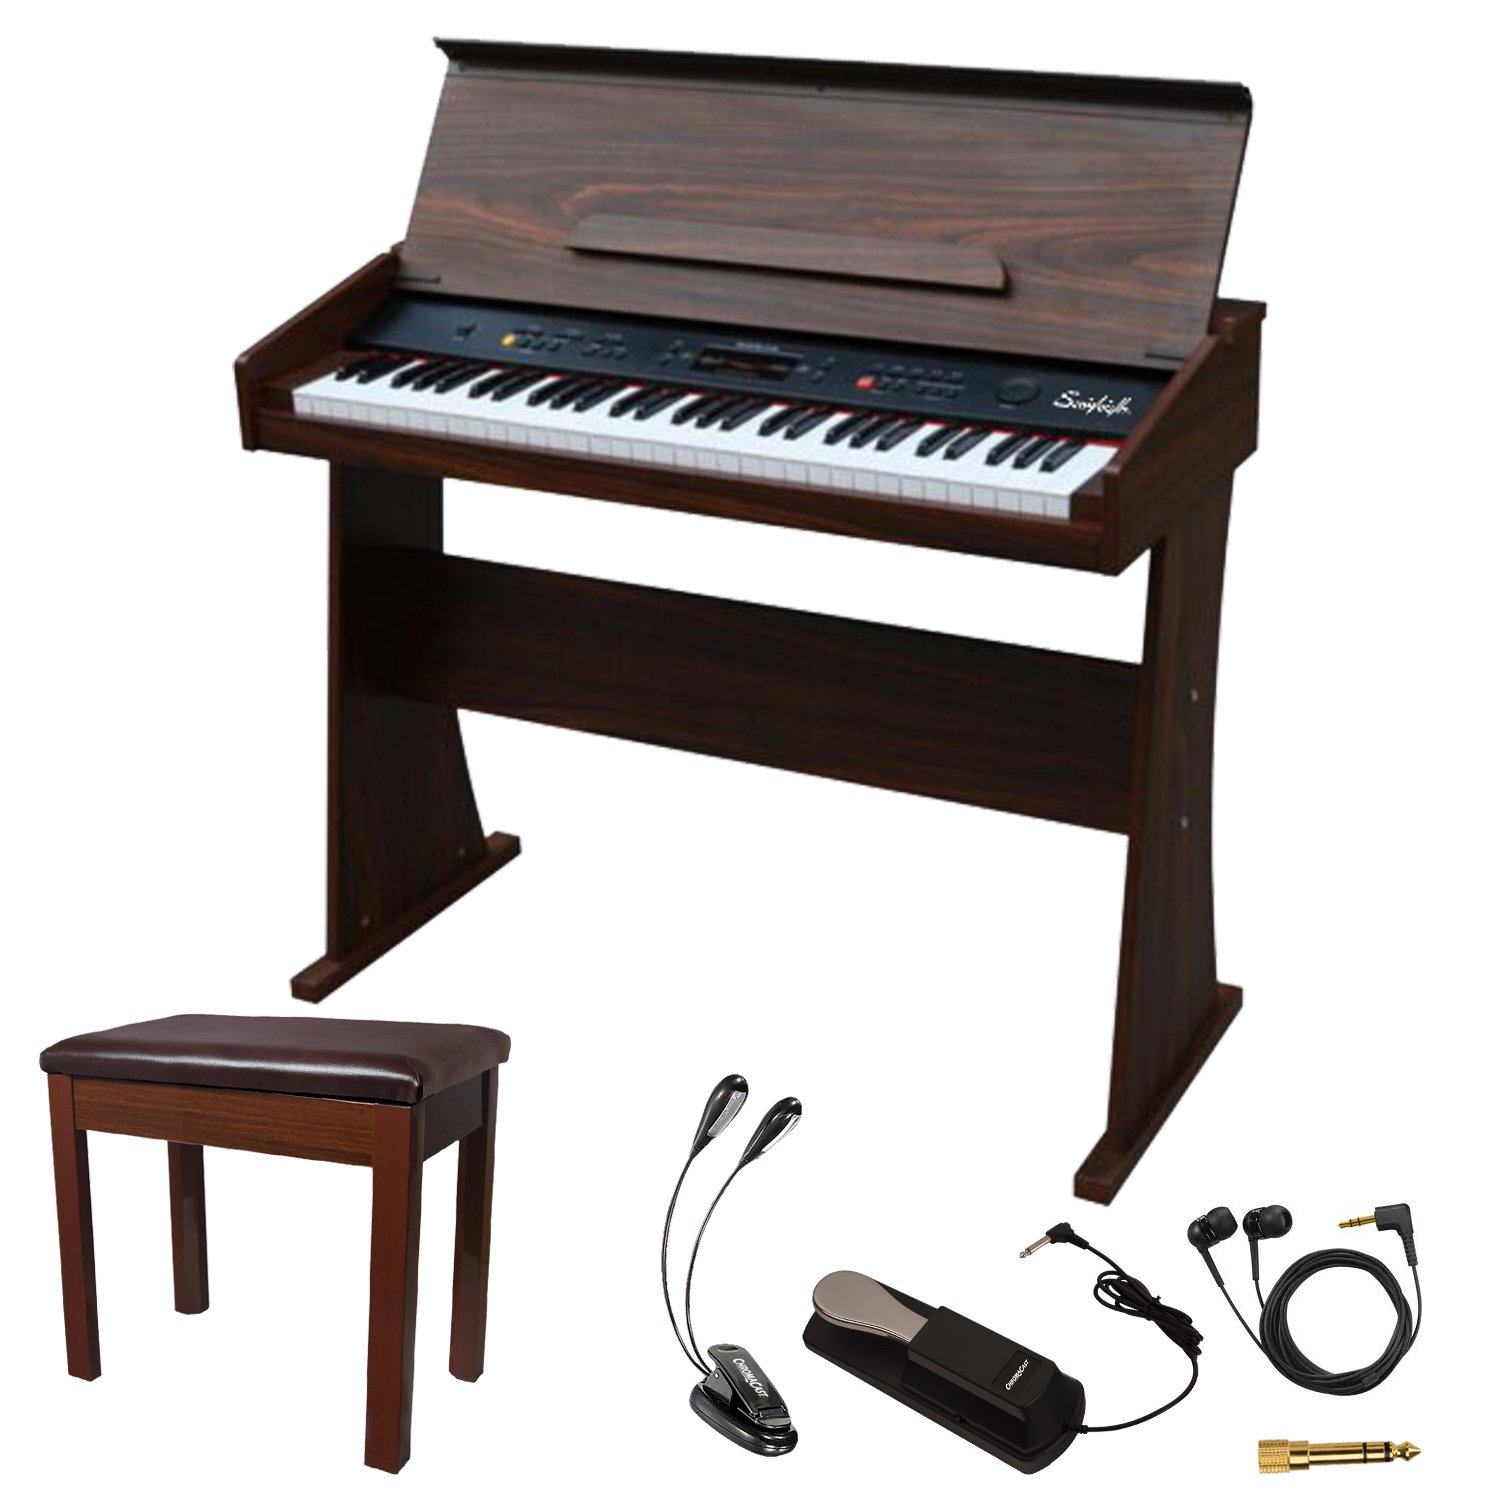 Sawtooth 61-Key Digital Console Piano with Bench & Accessories (ST-DCP-61-KIT-1)